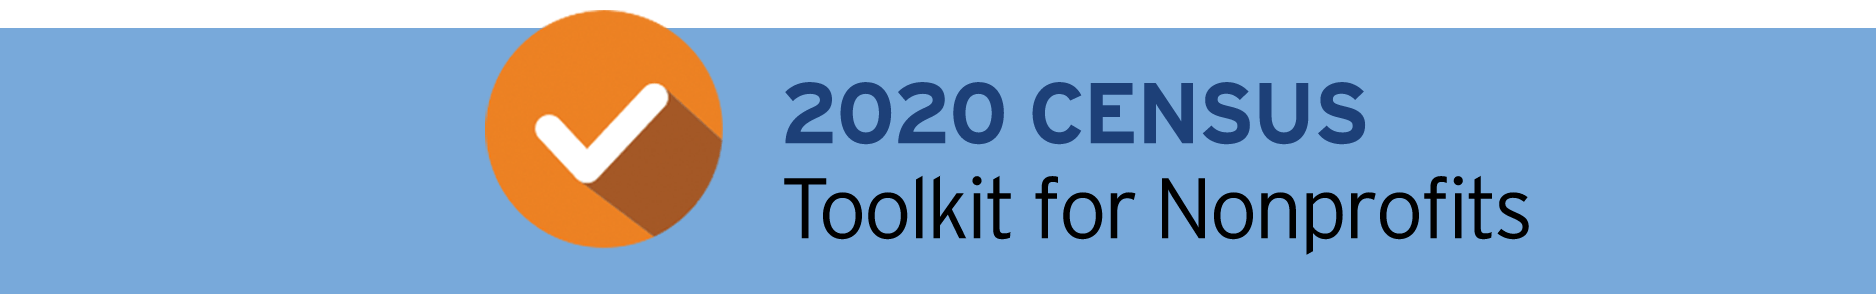 Census 2020 Toolkit